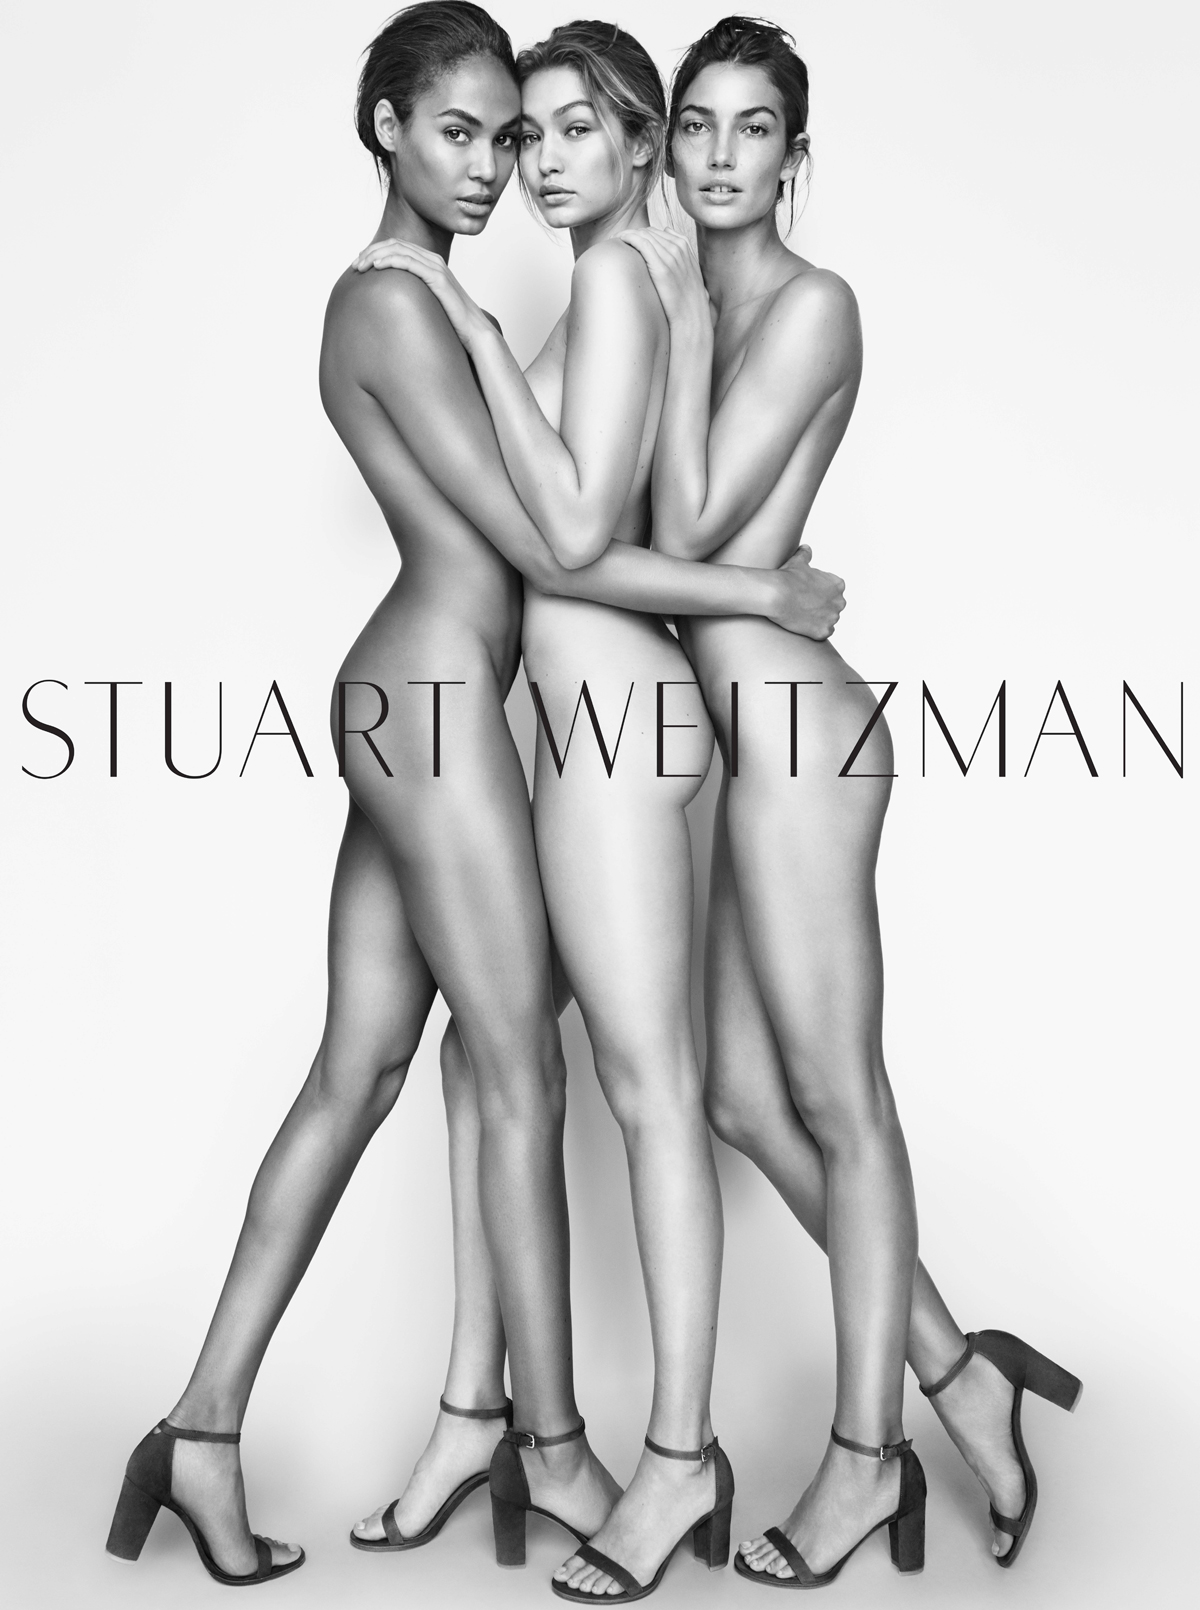 Gigi Hadid, Lily Aldridge, and Joan Smalls Shed All but Their Shoes for New Stuart Weitzman Campaign